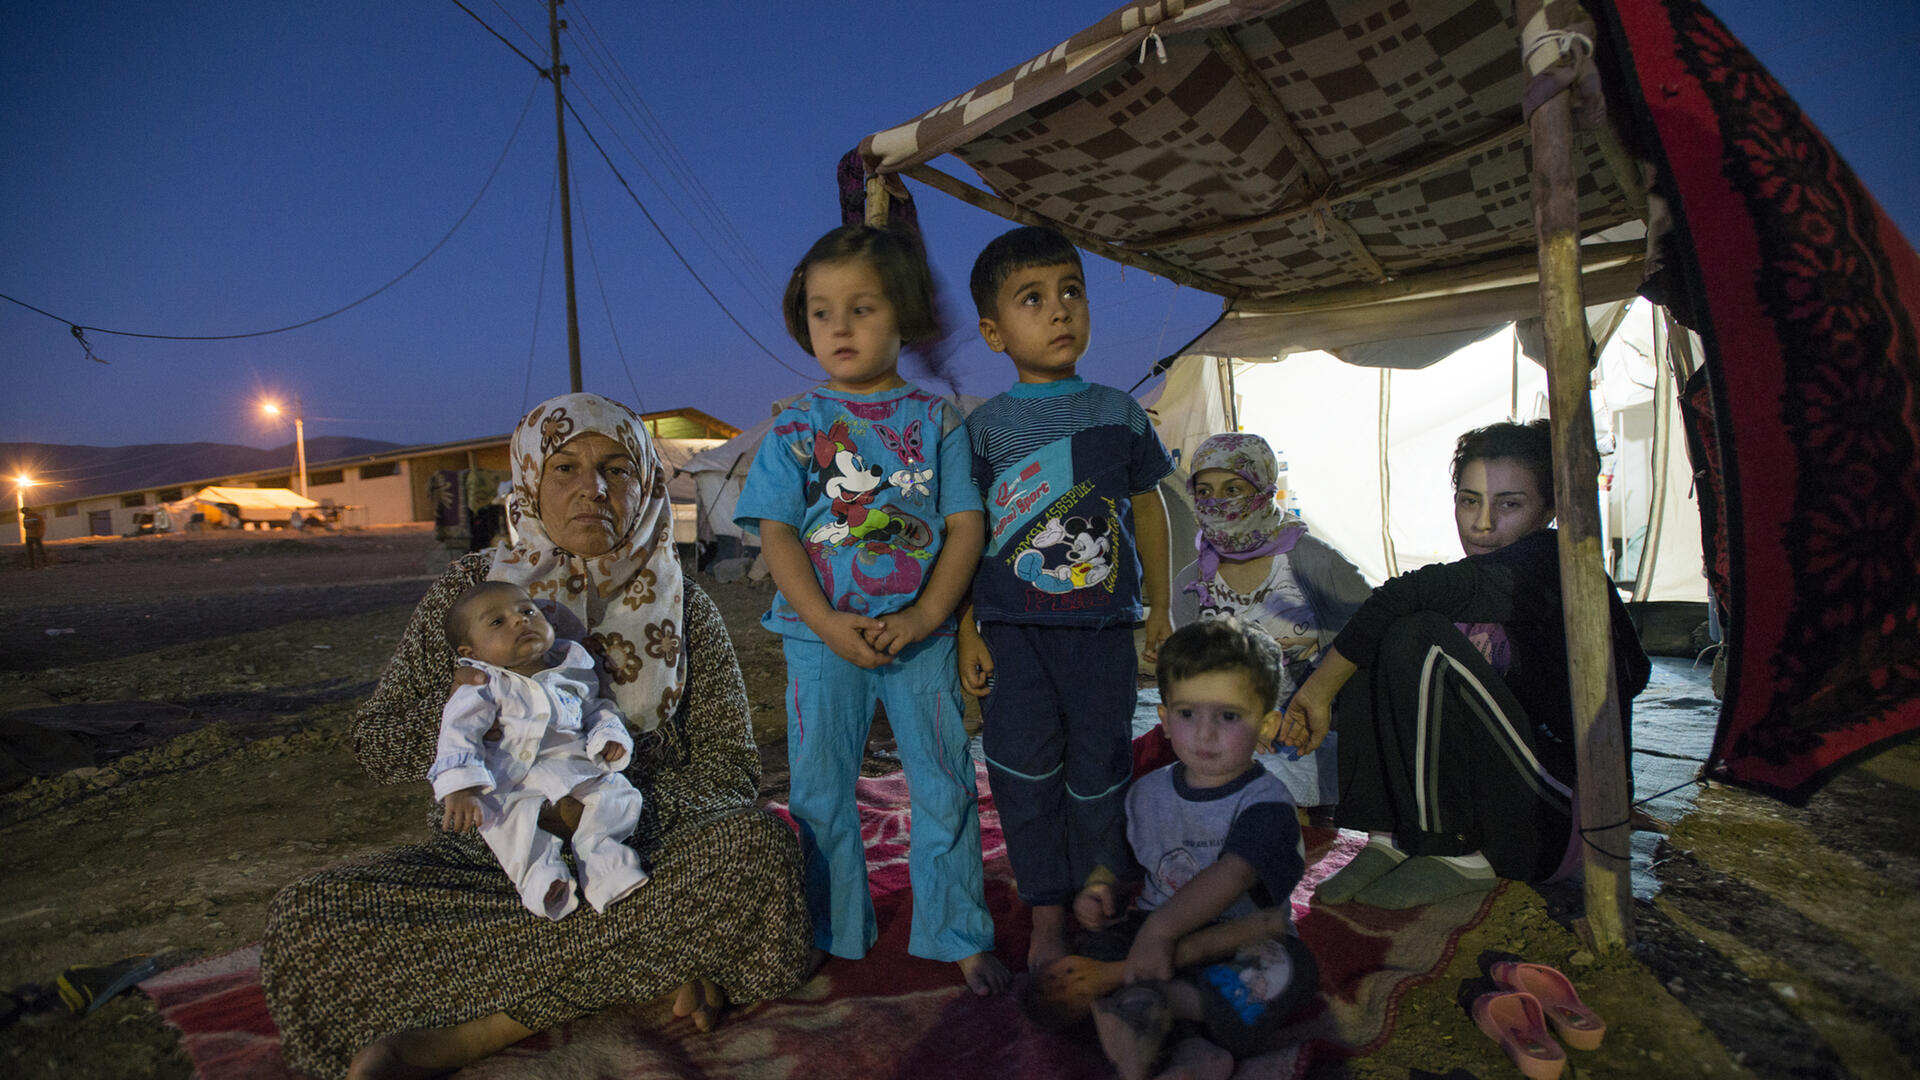 A family made homeless by violence sits outside their makeshift shelter in northern Iraq